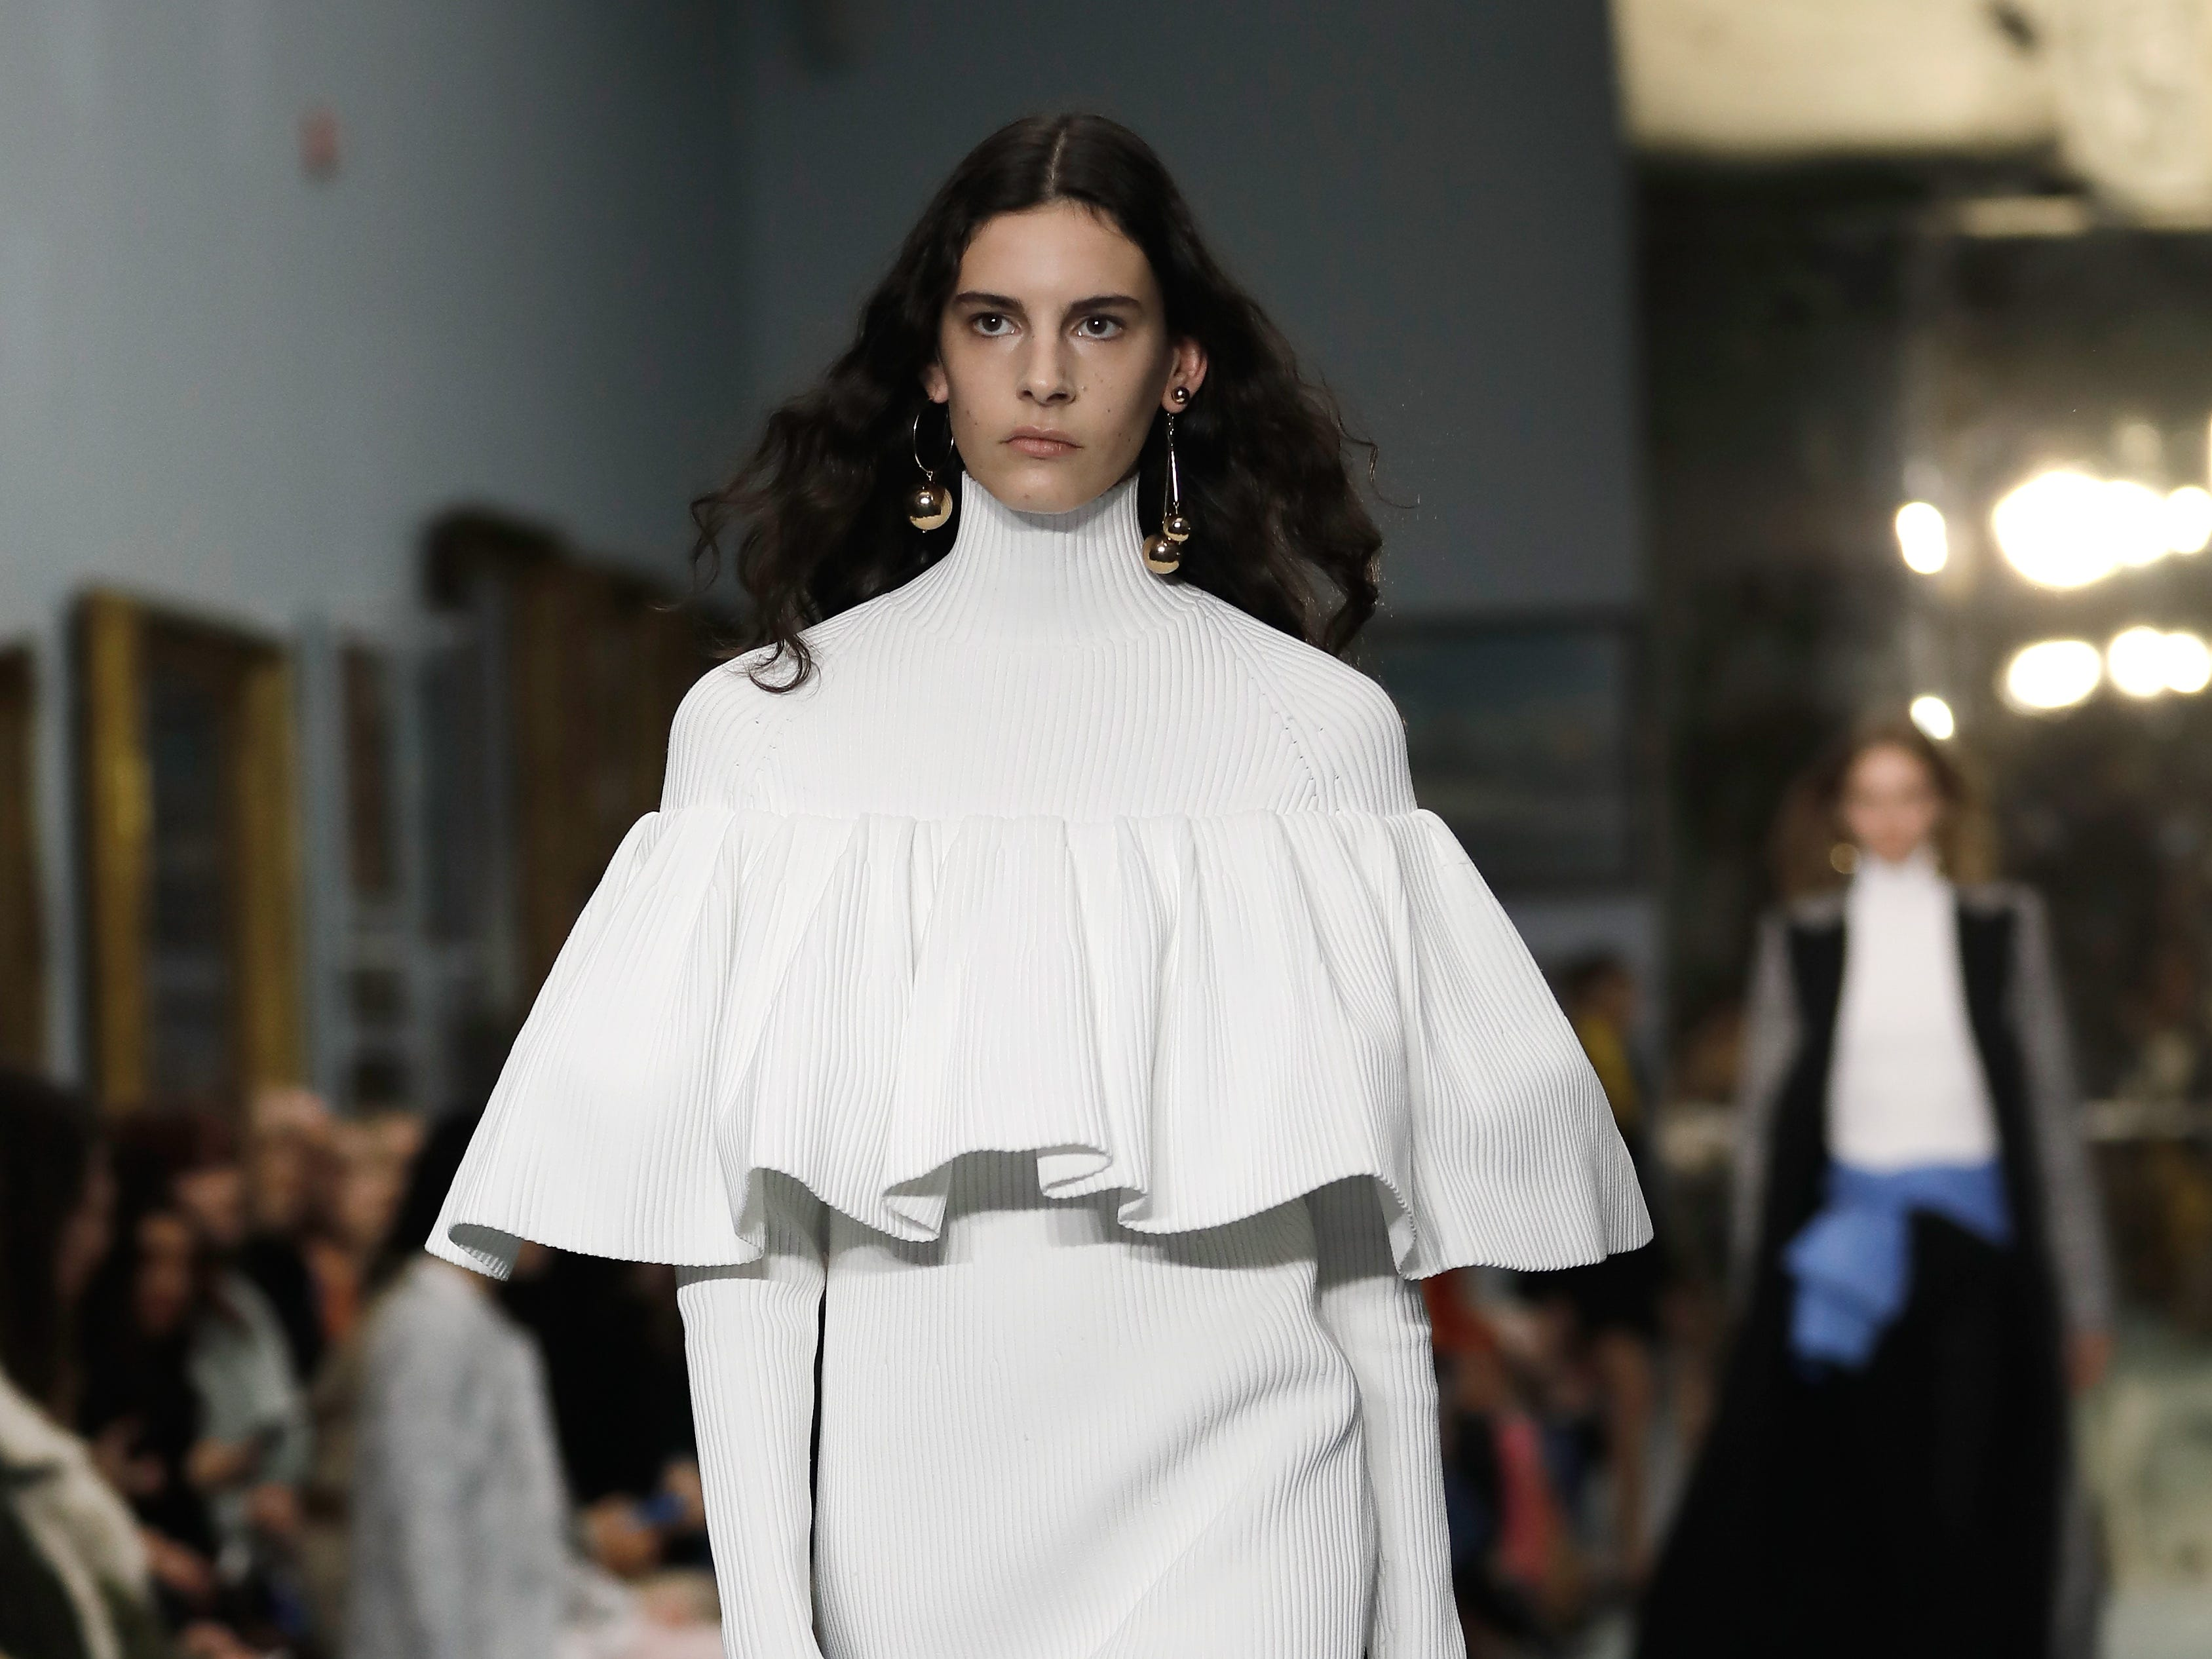 Another Herrera design featured a large ruffle over the bodice of a high-necked, long-sleeved column gown.